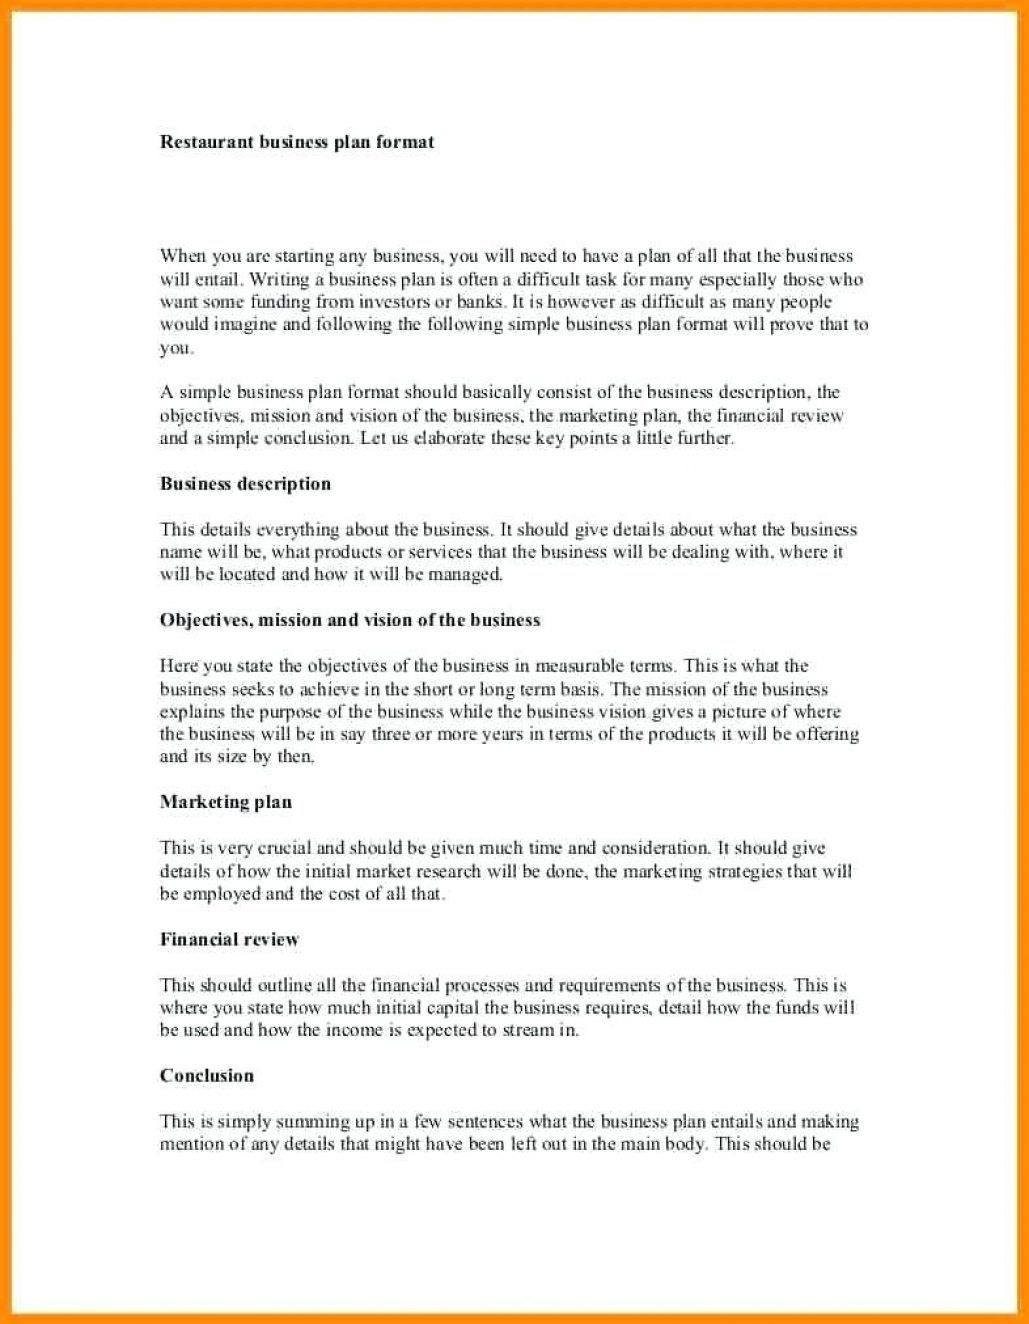 Business Proposal Template for Restaurant Business